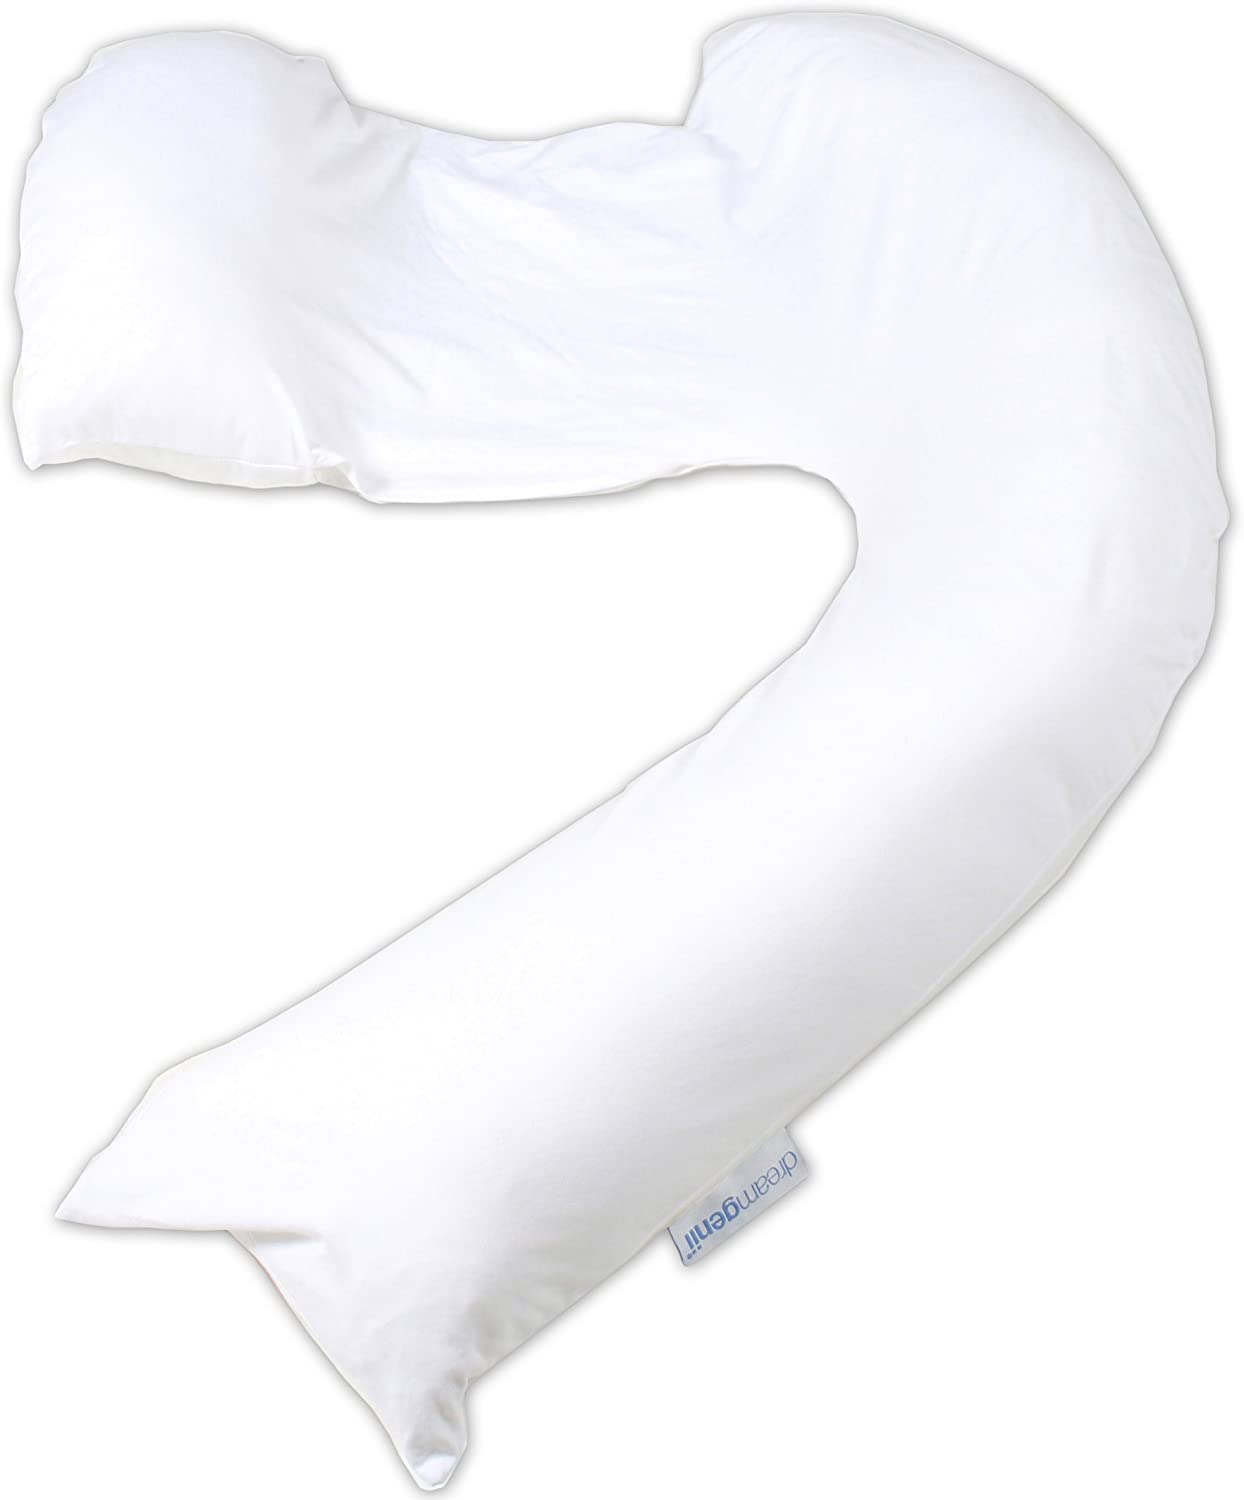 Popular product Dreamgenii Pregnancy Sale Special Price Support Pillow White Feeding